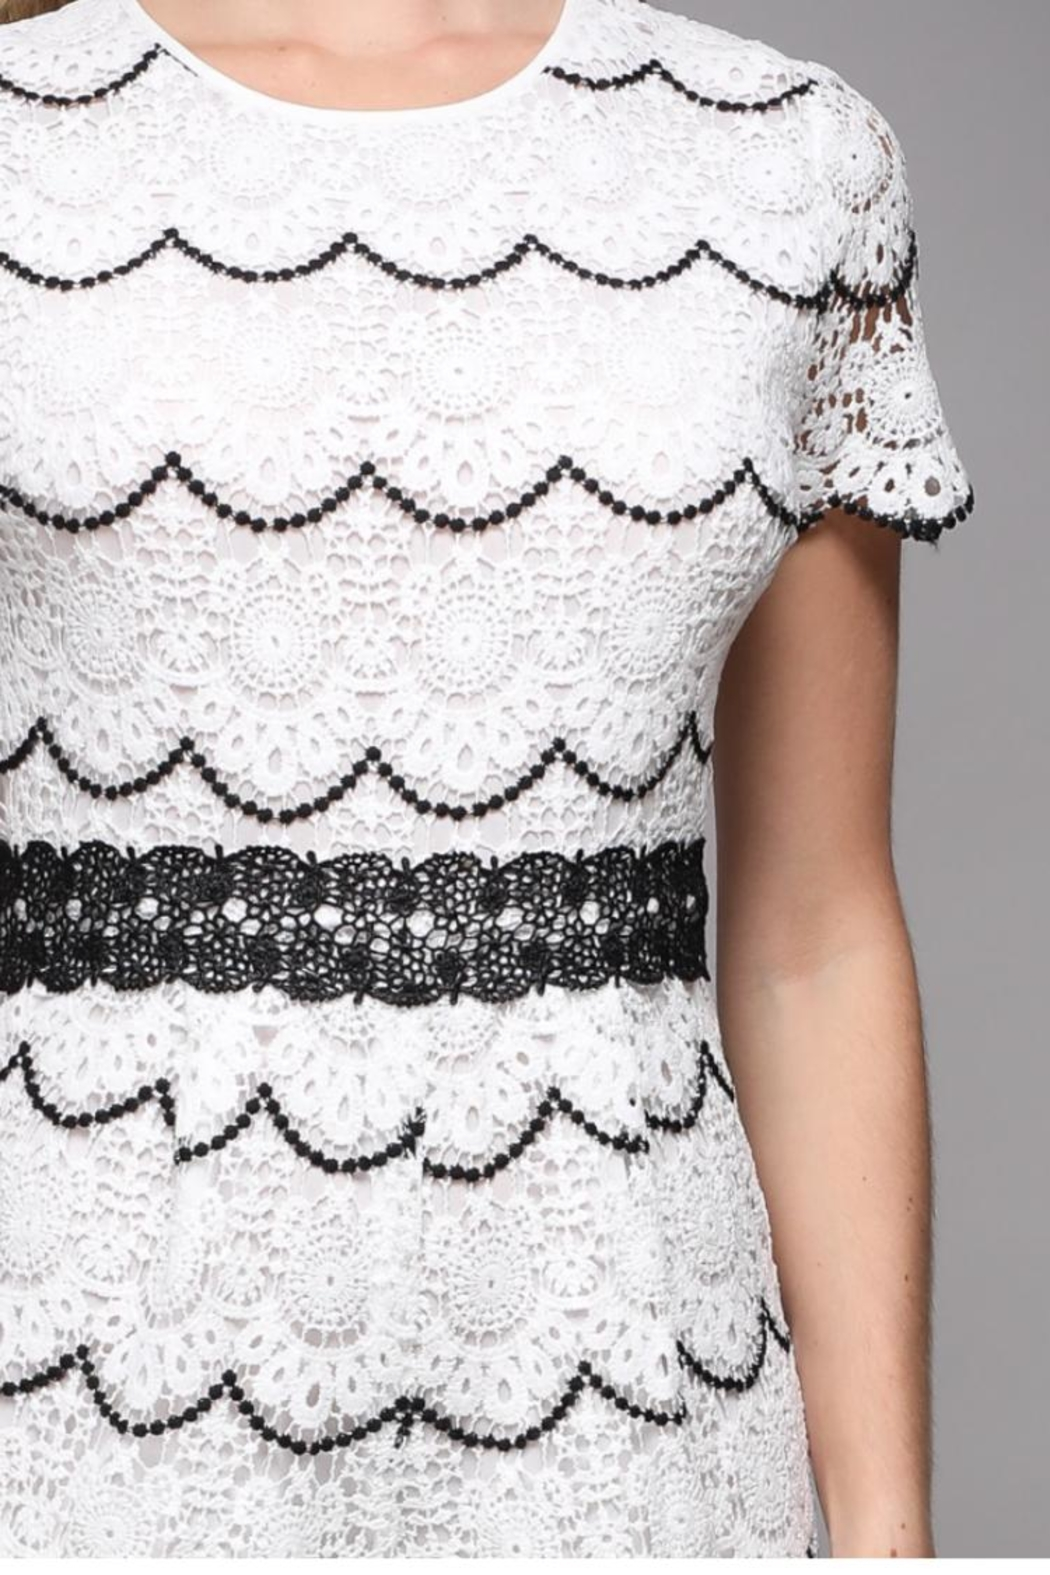 Do & Be Short-Sleeve Lace Romper - Back Cropped Image